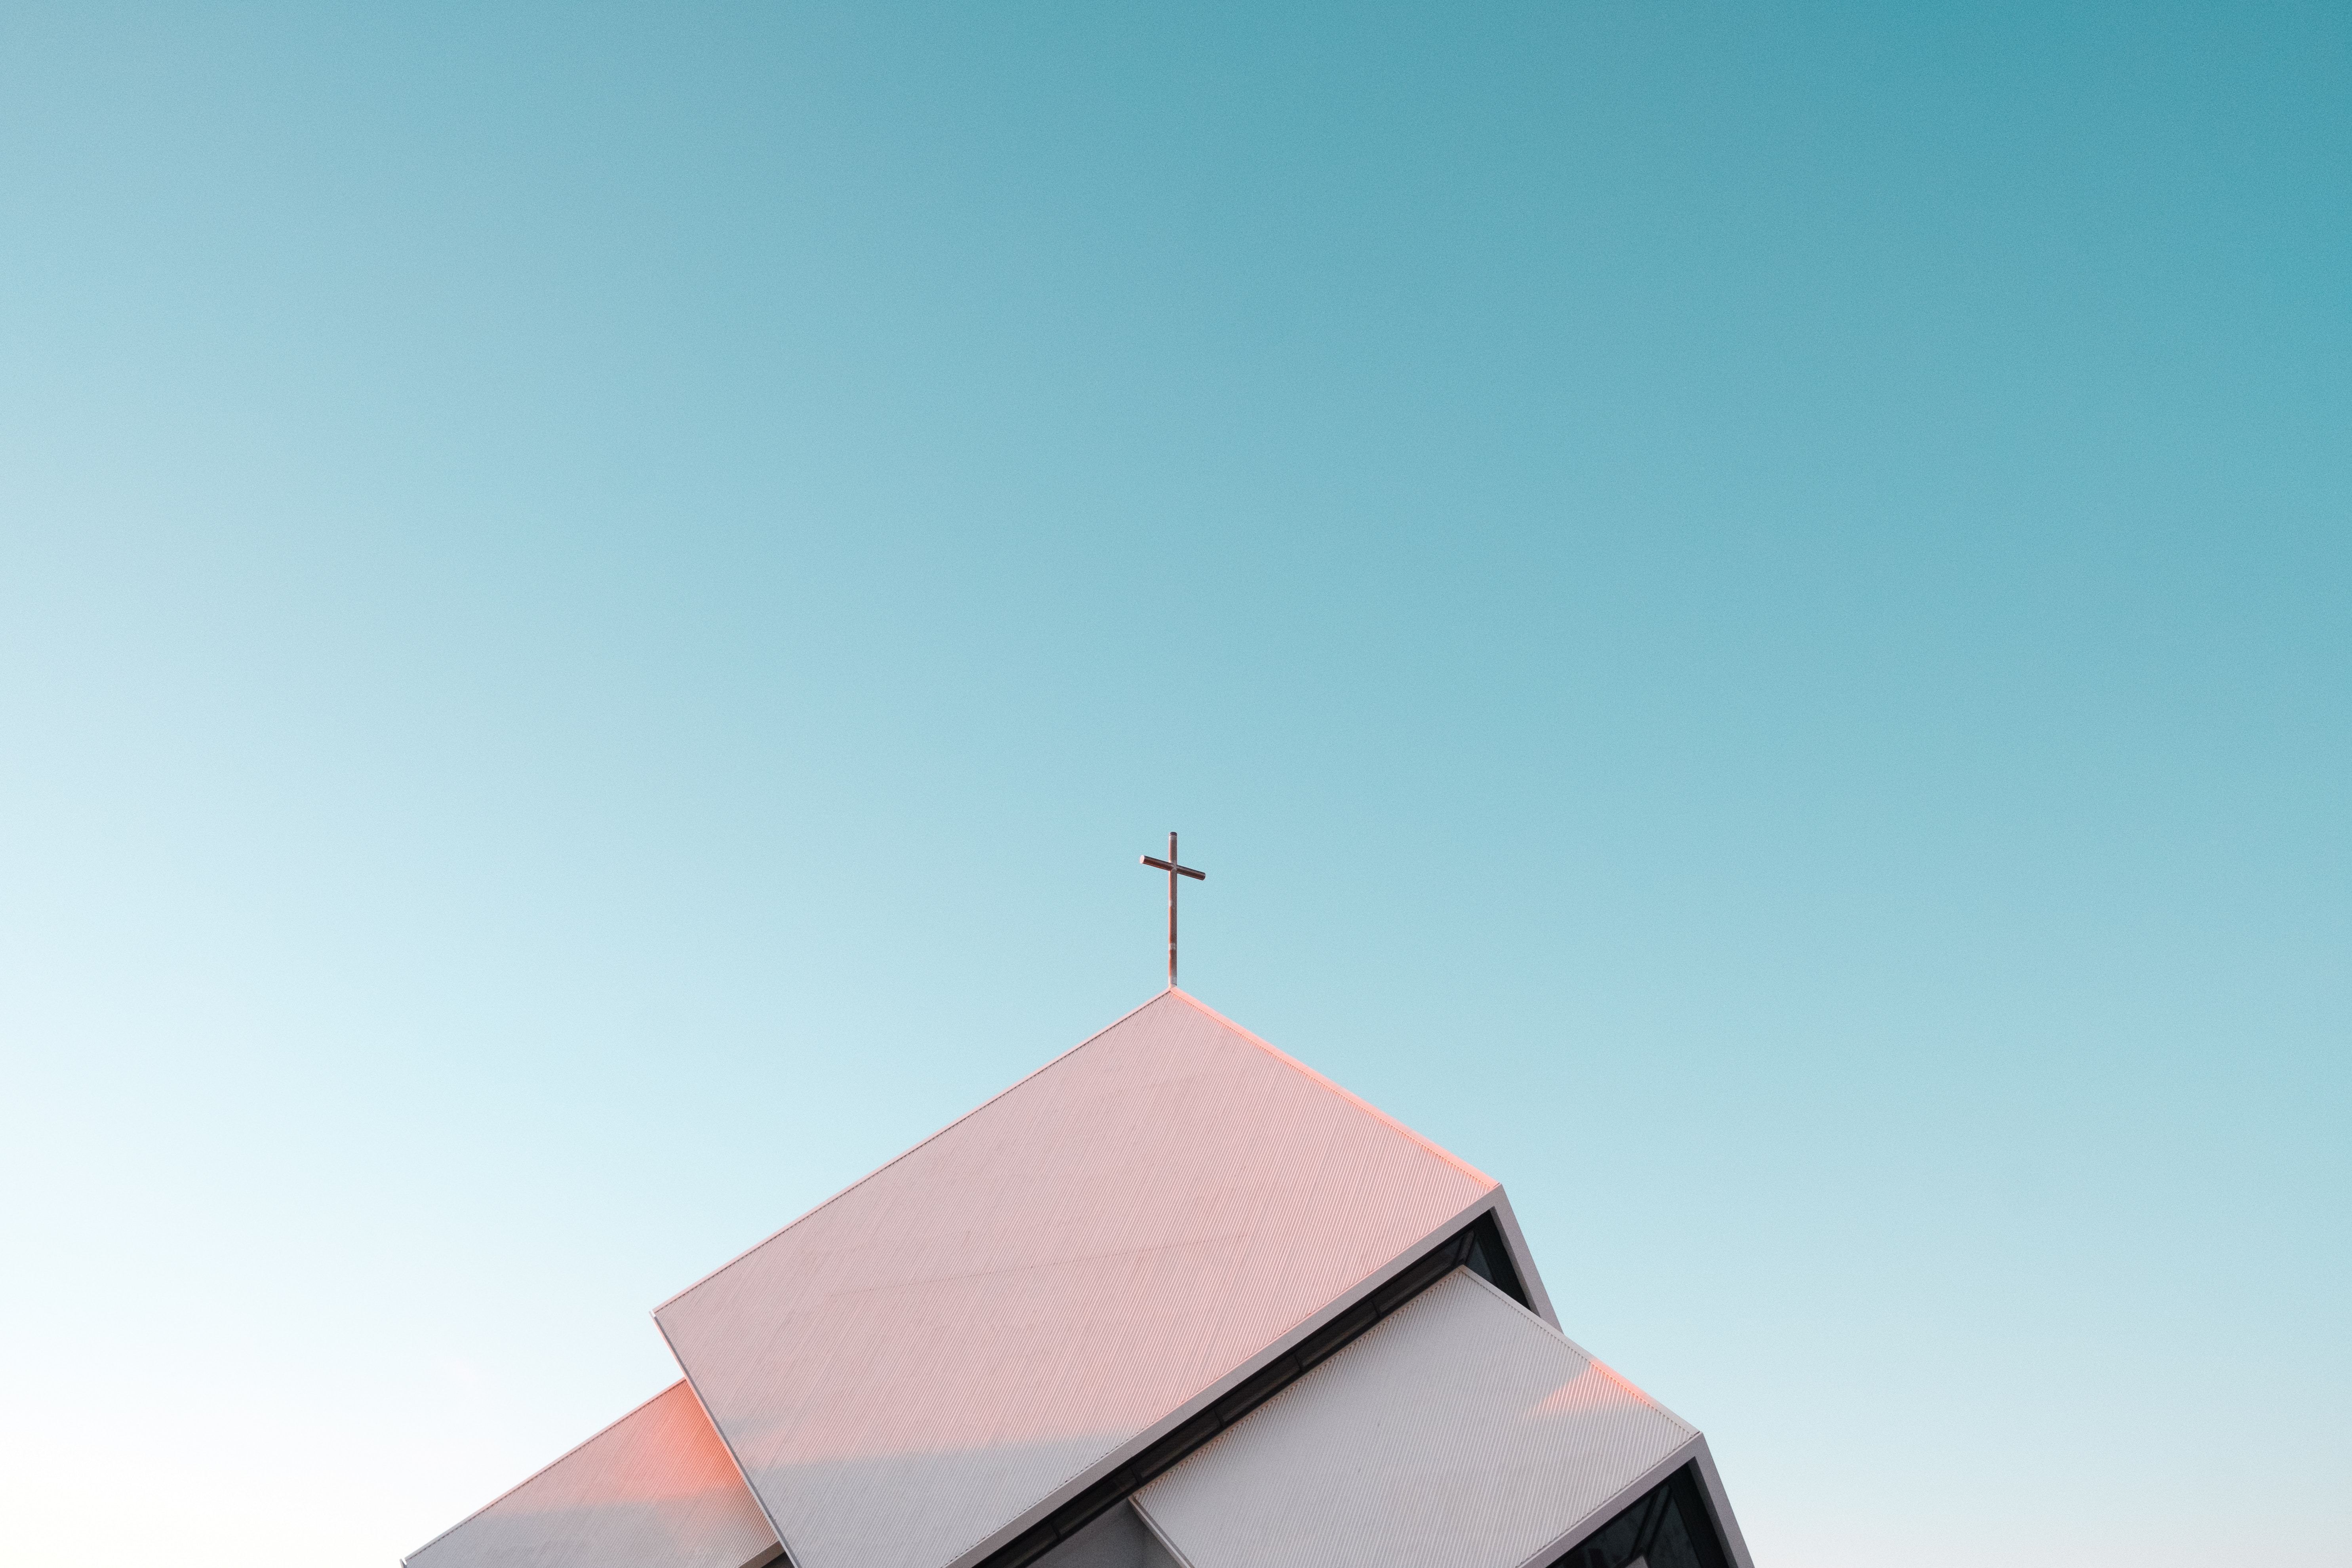 Image of a cross on a church roof